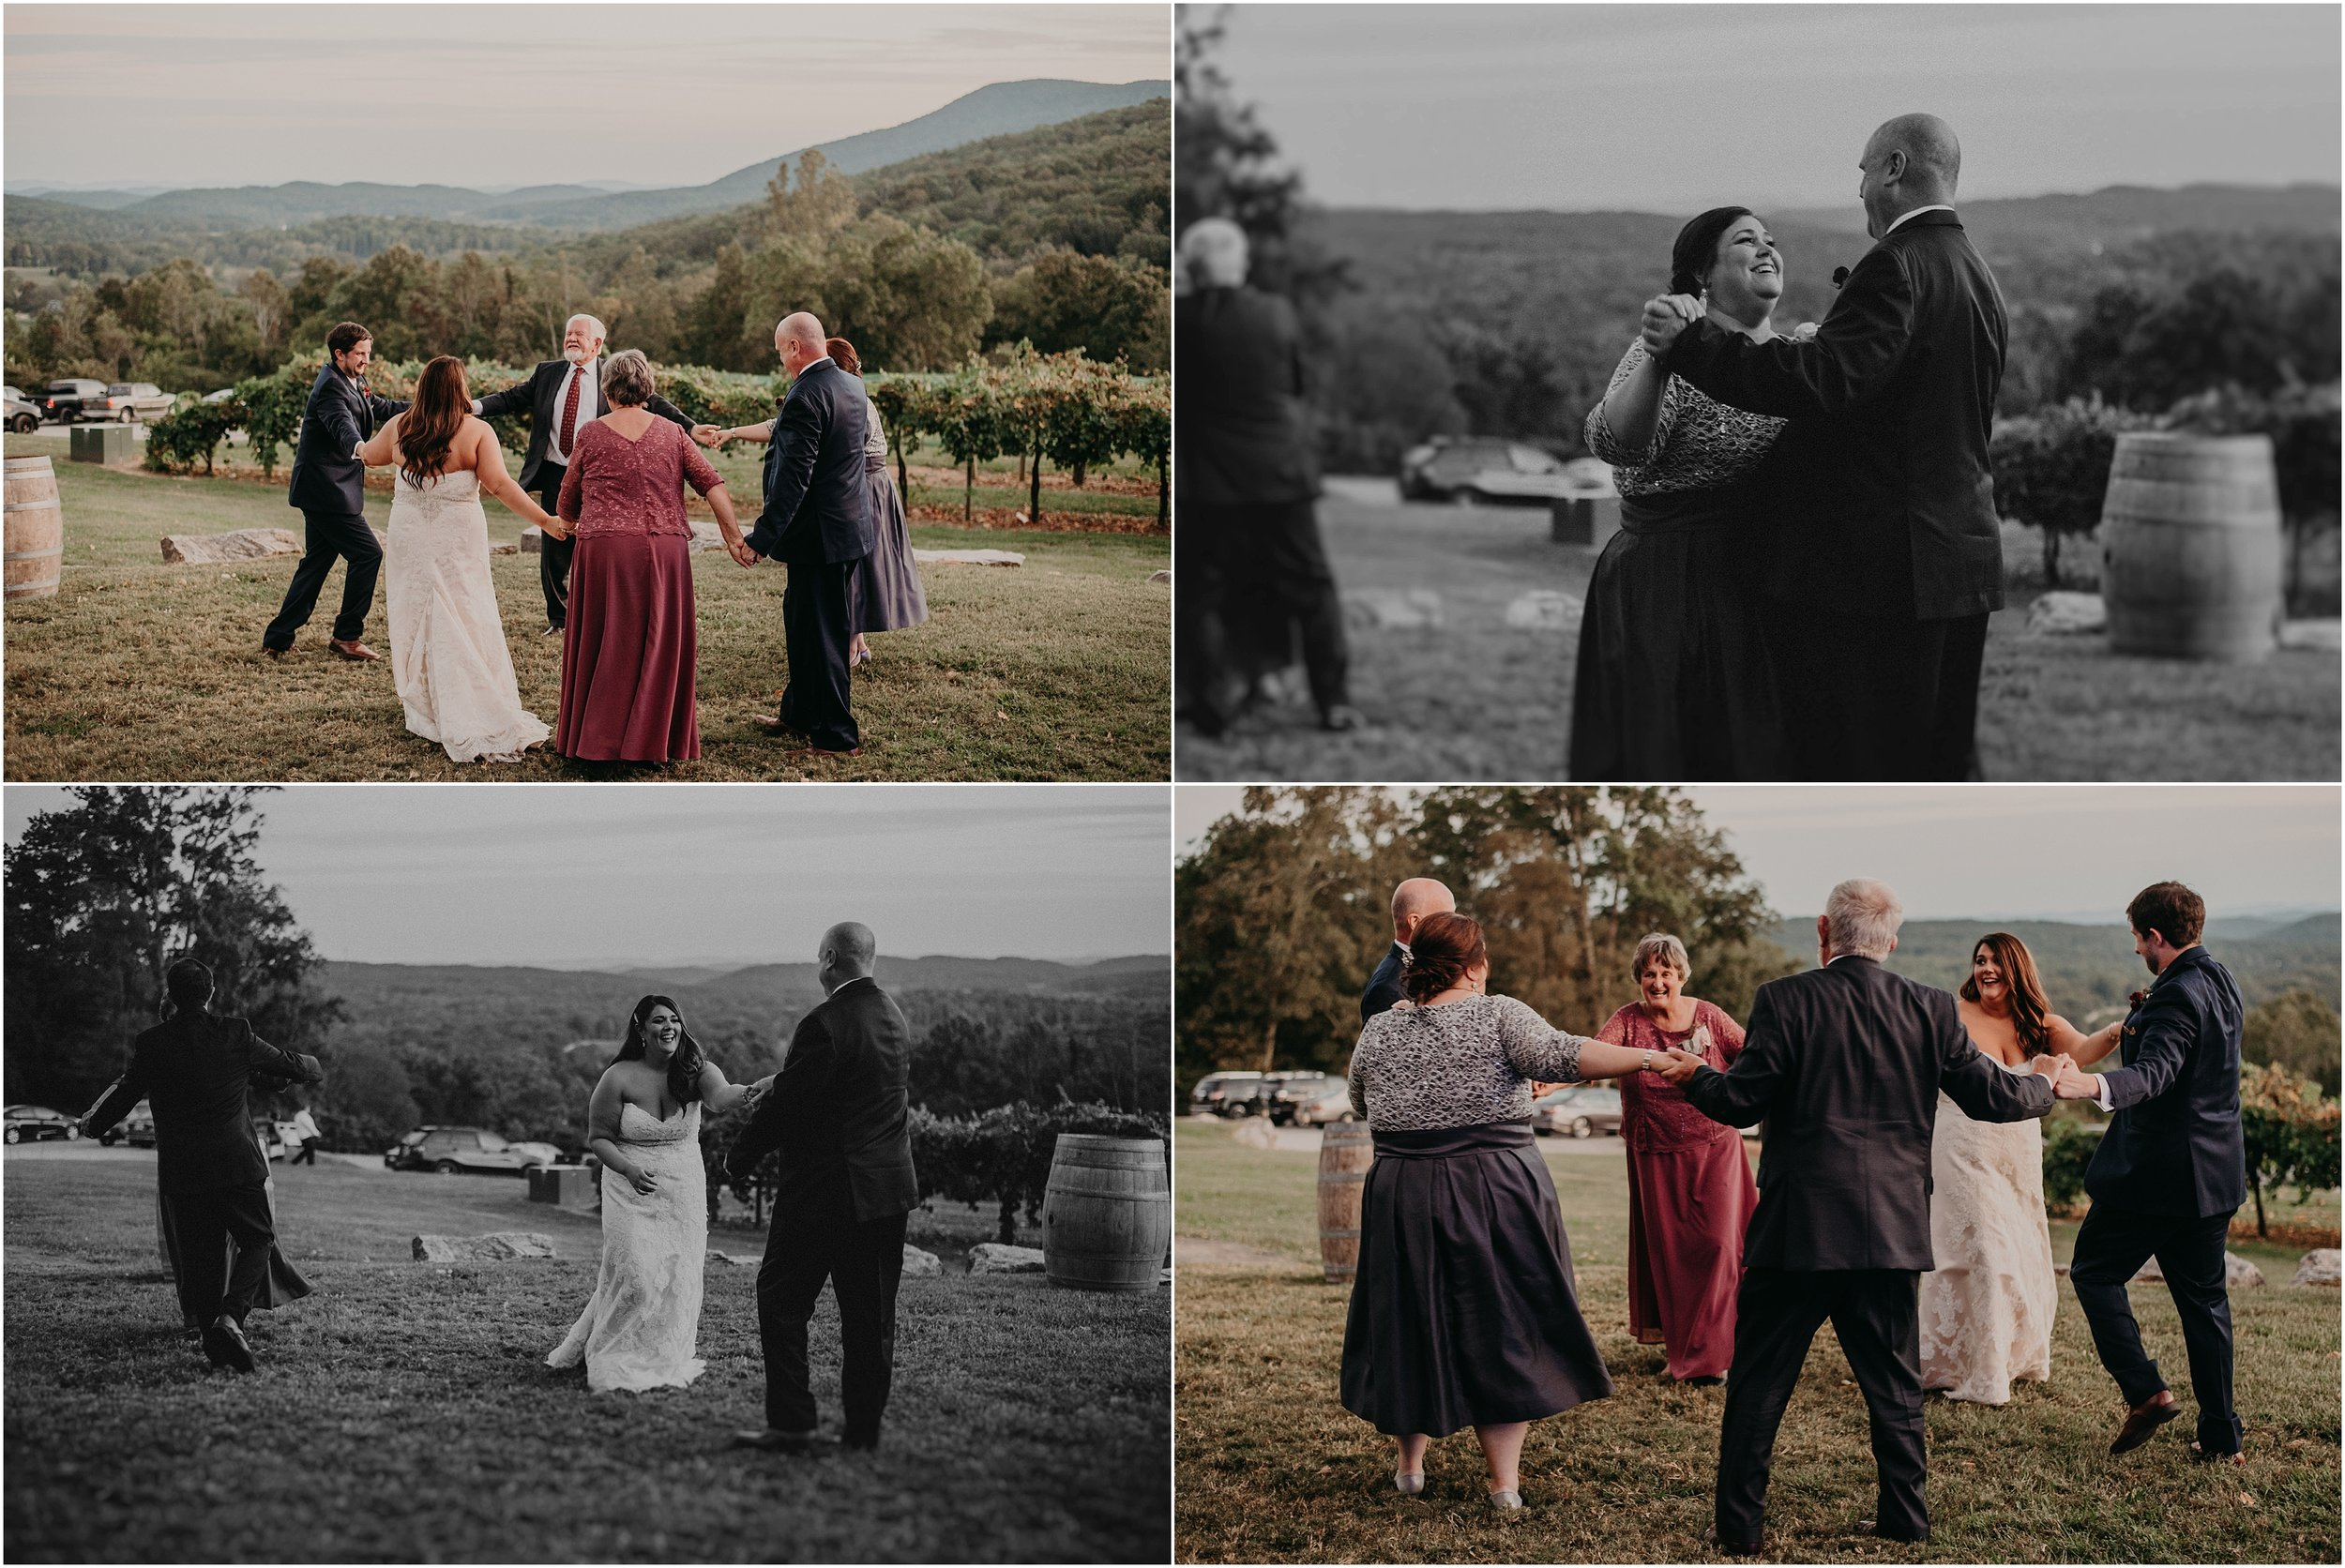 Families of bride and groom share dance together